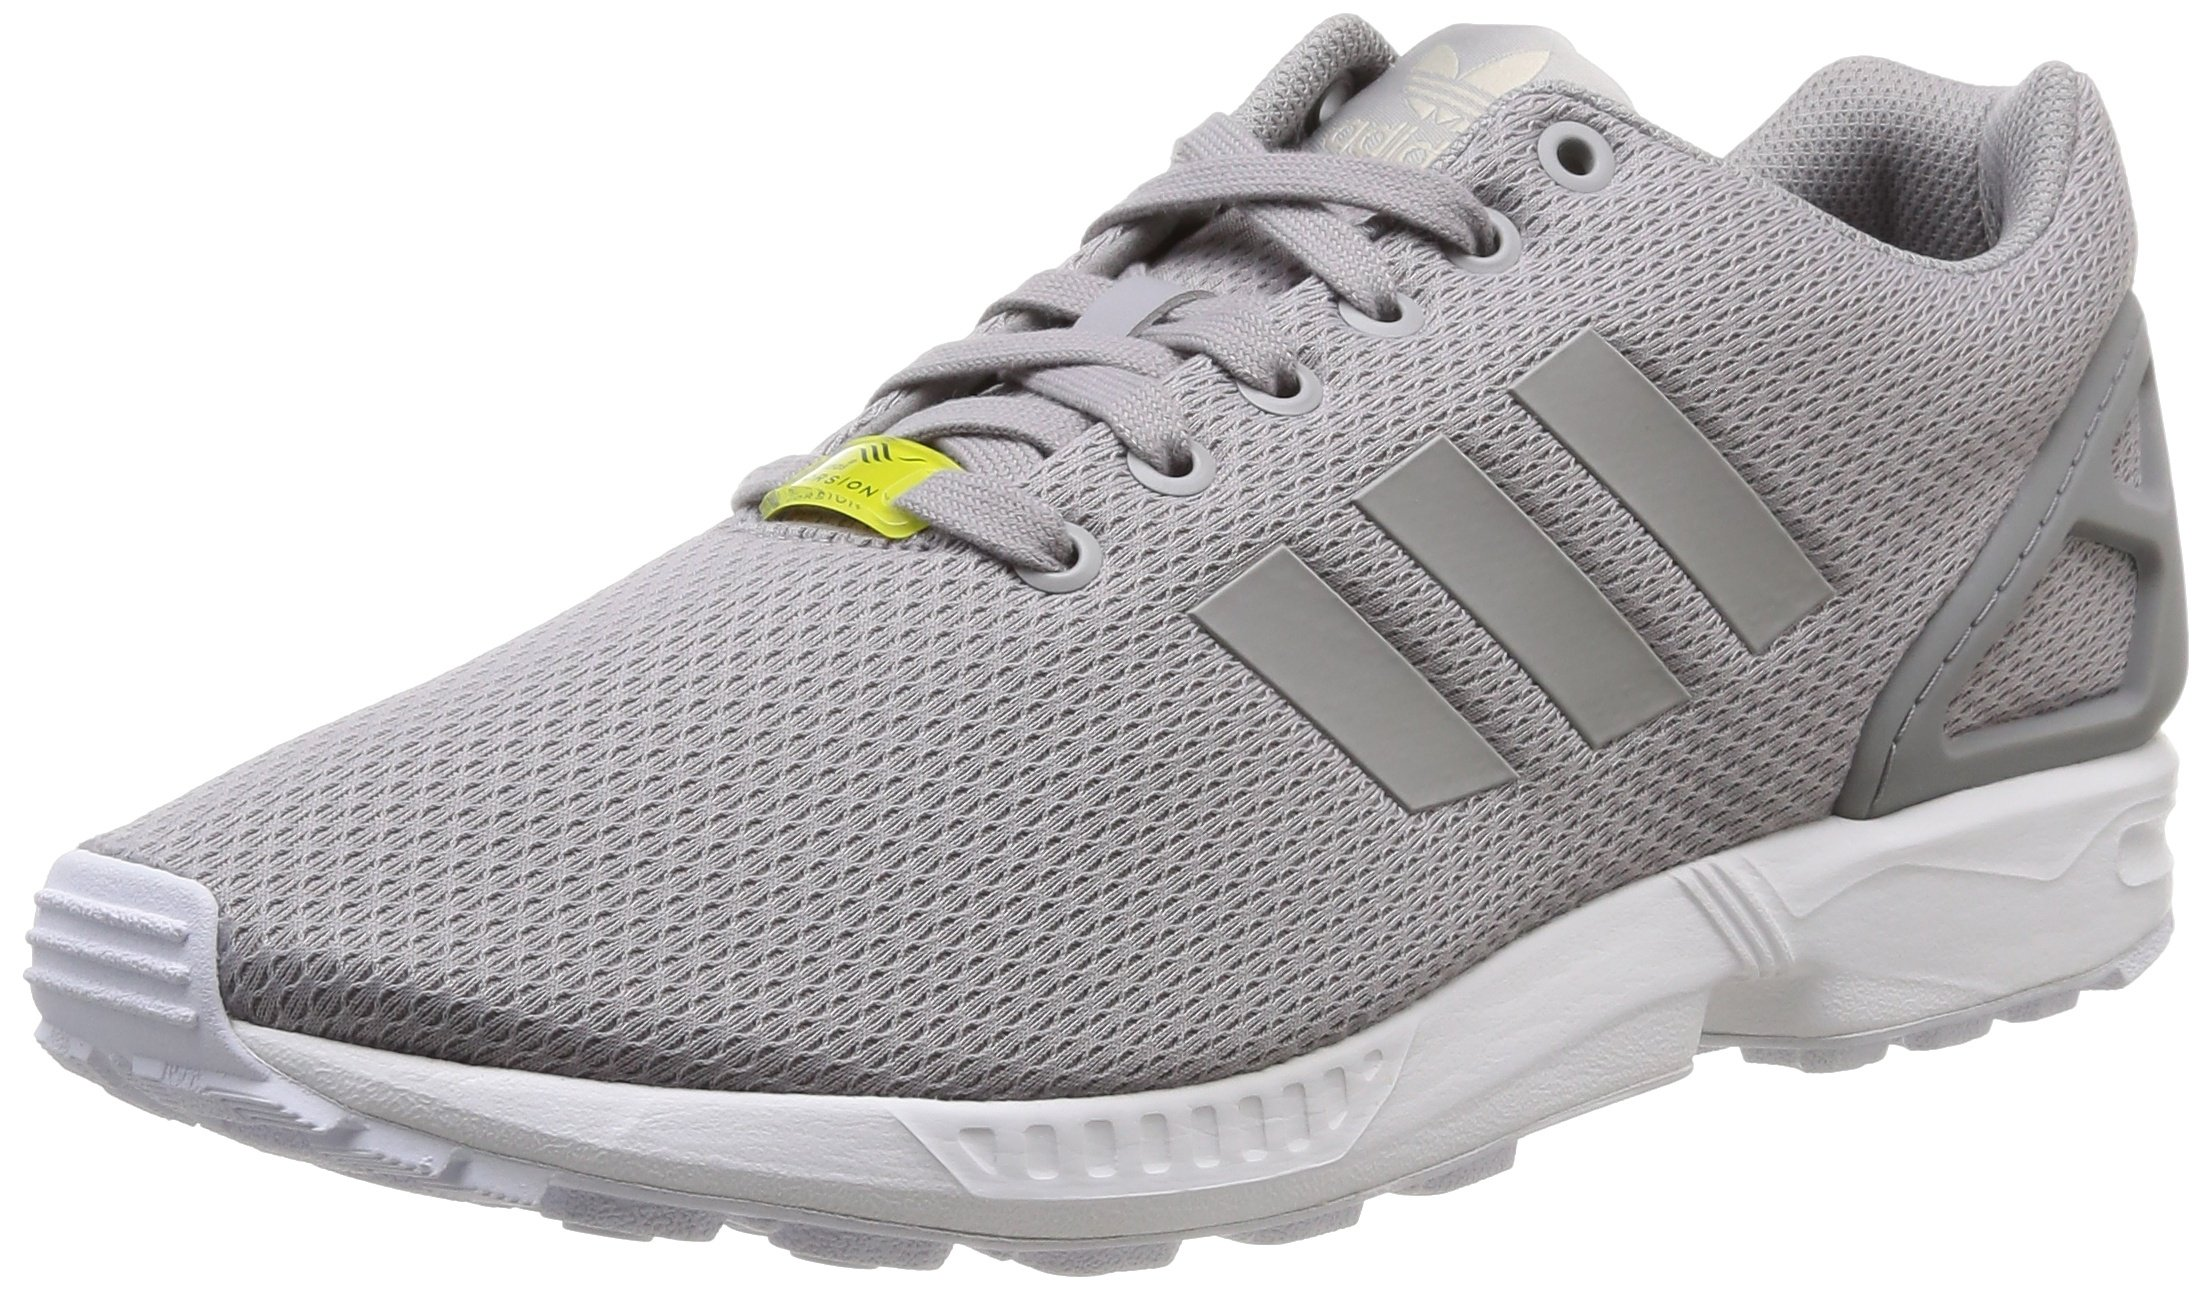 Mens Grey Trainers: Amazon.co.uk